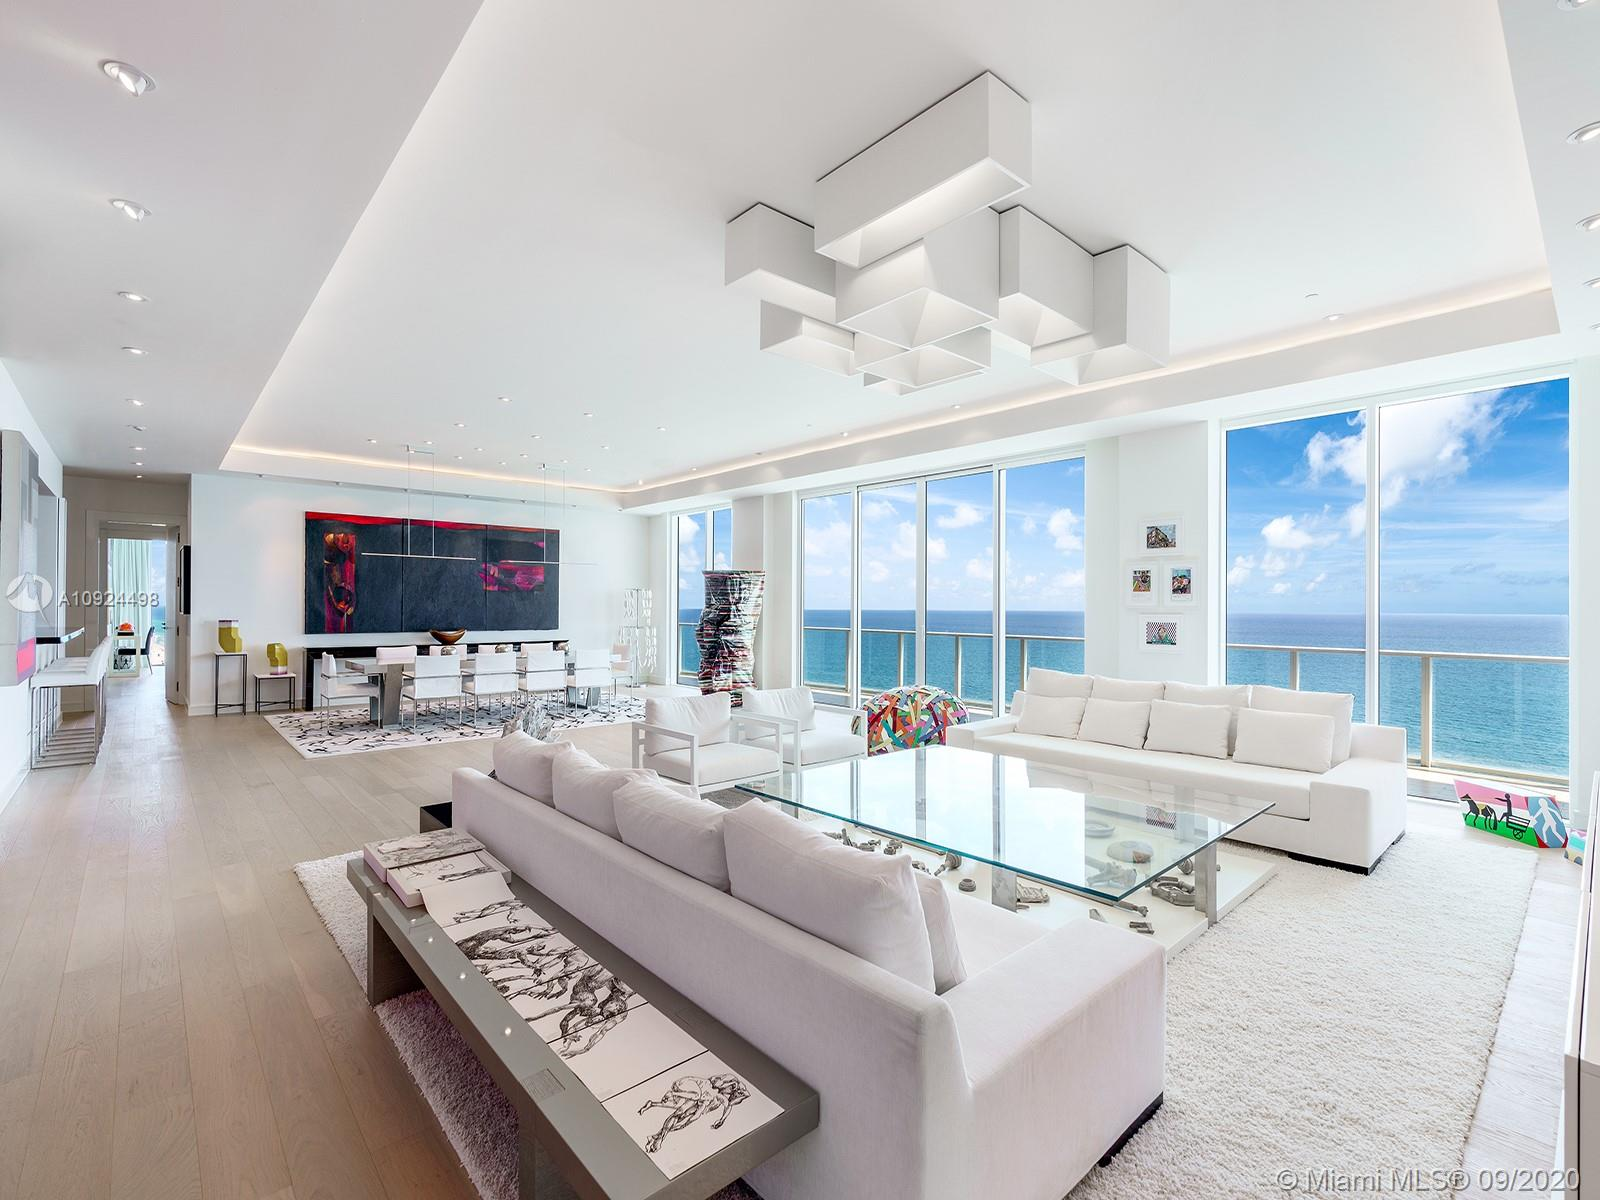 The penthouse at Apogee Beach was completely custom designed to be a luxurious home for entertaining and grand living and is now on the market for the first time. Atop this boutique building designed by renowned architect Carlos Ott, the full-floor residence features extraordinary views in every direction from its many outdoor spaces, including the all-encompassing balconies on the east & west facades, an expansive rooftop deck with outdoor kitchen and private pool, and a private poolside cabana downstairs. Show stopping interiors with high ceilings and pale wood floors, massive living room, and a master suite complete with private office. The building offers an extensive roster of amenities, including over 240ft of ocean frontage, pool, fitness center, club room, theater, and kids lounge.